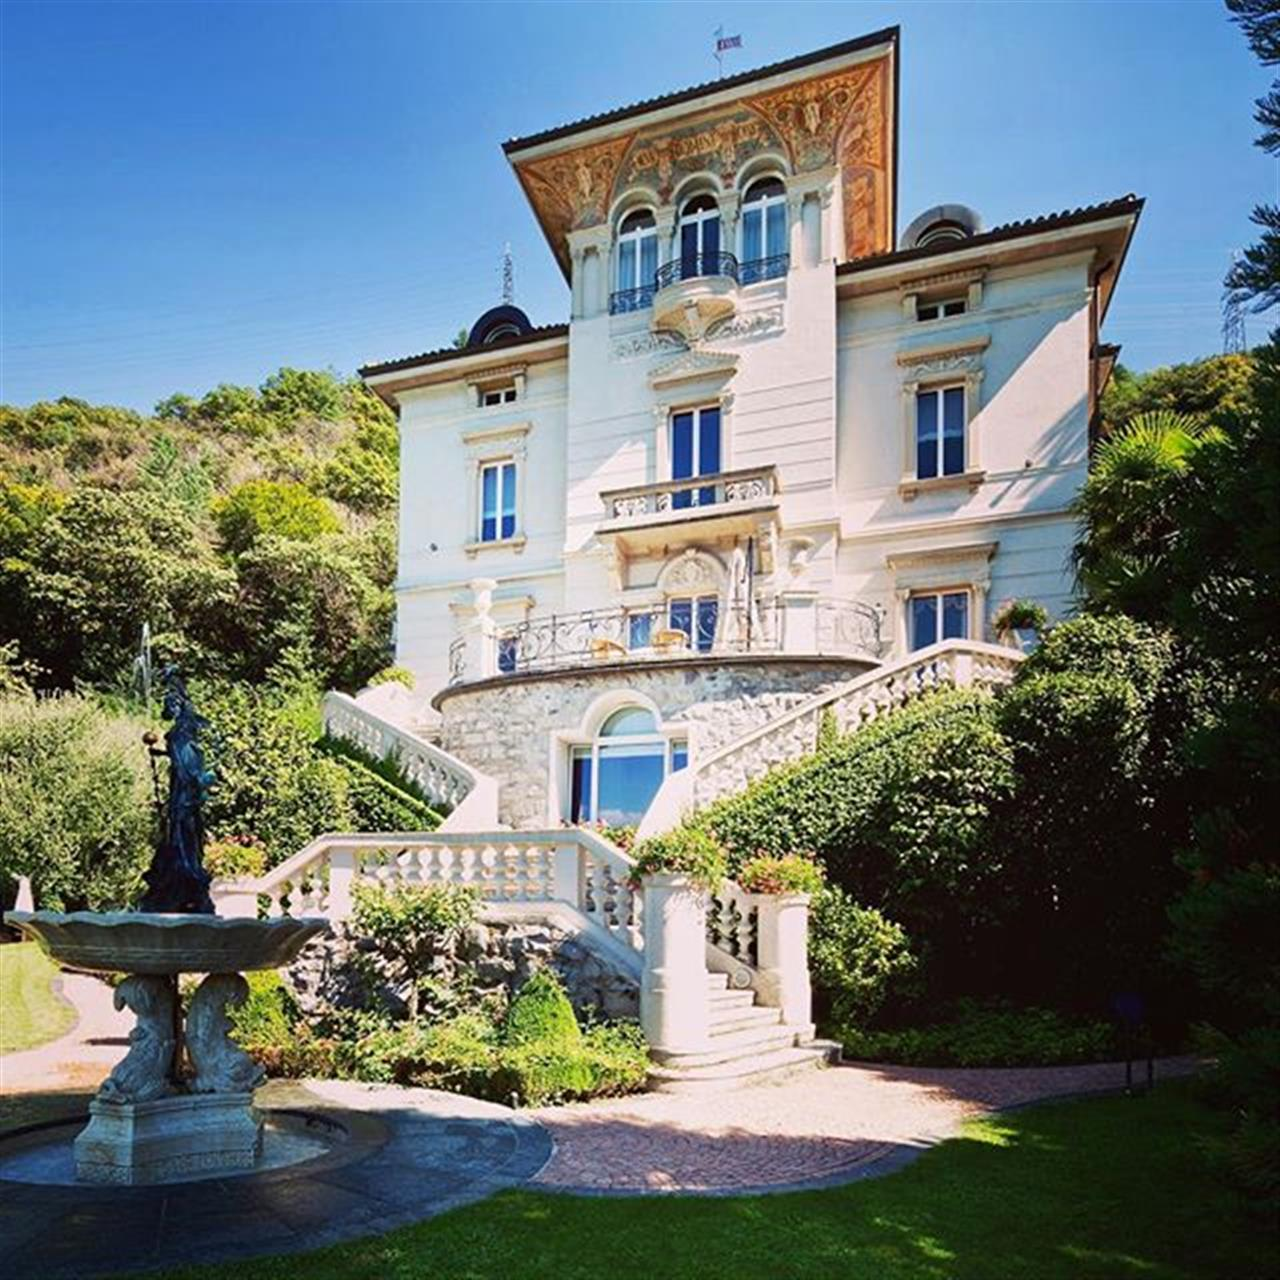 Villa Wellingtonia: the epitome of luxury!  Glorious estate located in a sought after area and framed by a bucolic park overlooking Lake Lugano. This lake front home, which is completely renovated and in perfect condition, offers outstanding amenities such as spacious interiors, an oversized swimming pool, superb outdoor entertaining areas and a private beach with a large boat place.  For more information search at wetag.ch with ref. 88306  #luxuryvilla #villaforsale #apartmentforsale #lakemaggiore #ticino #switzerland #luxuryrealestate #luxurylife  #luxurylifestyle #christiesinternationalrealestate #luxuryportfolio #wetagconsulting #leadingre #ChristiesHomes #takemehere #FF #instafollow #l4l #tagforlikes #followback #instagood #tbt #photooftheday #followme #likeforlike #LeadingRElocal